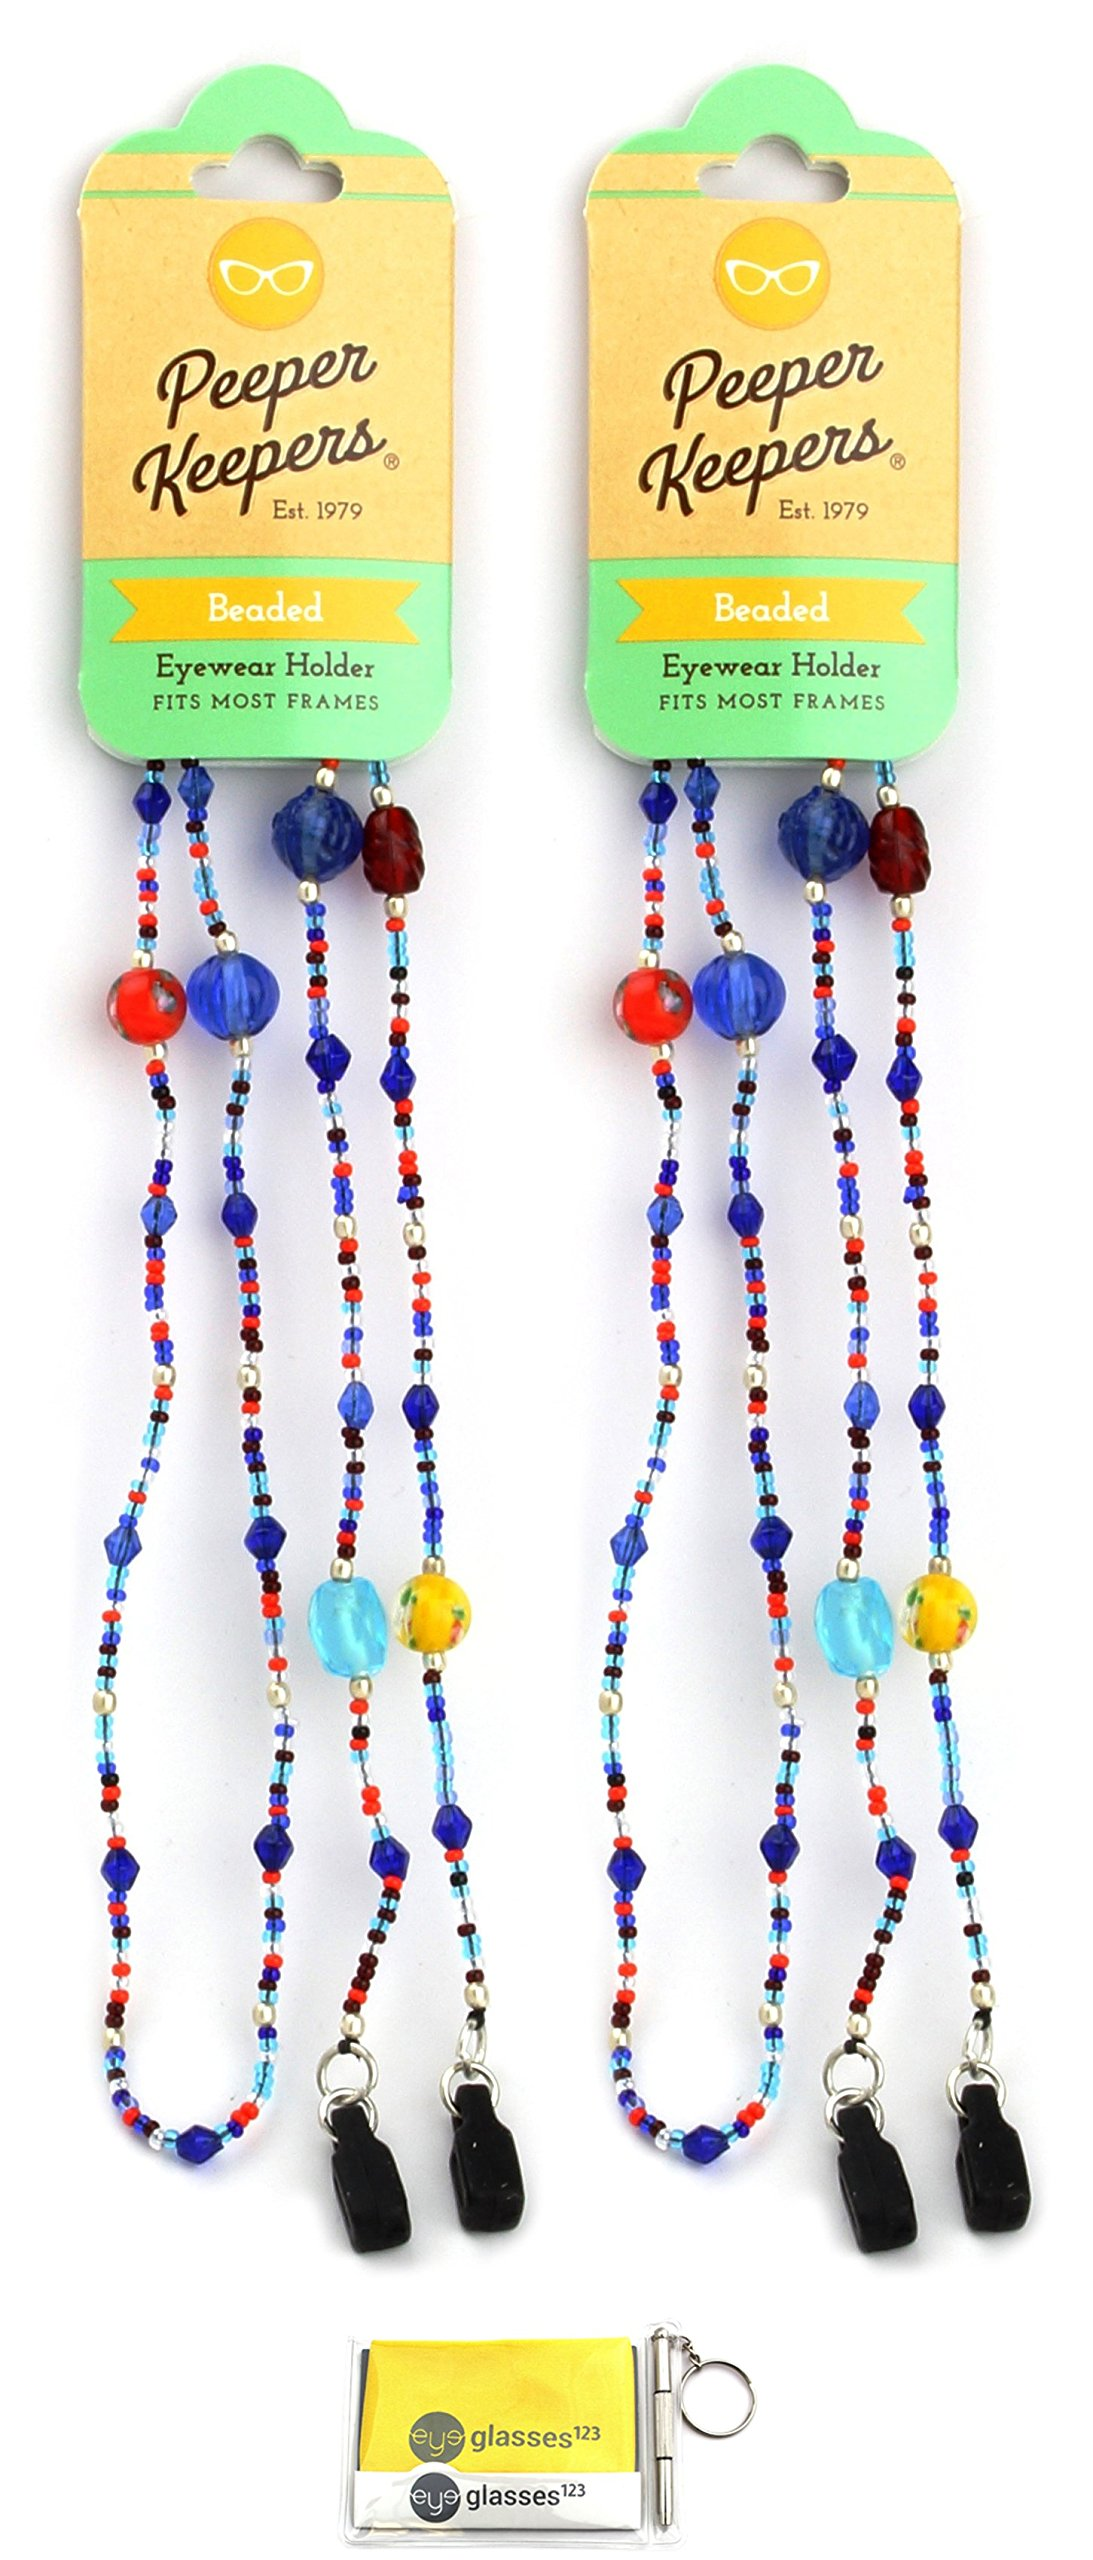 Eyeglass Retainer & Sunglass Holder By Peeper Keepers Glass Beads, Mixed Jewel, 2pk | w/Microfiber Cloth & Screwdriver